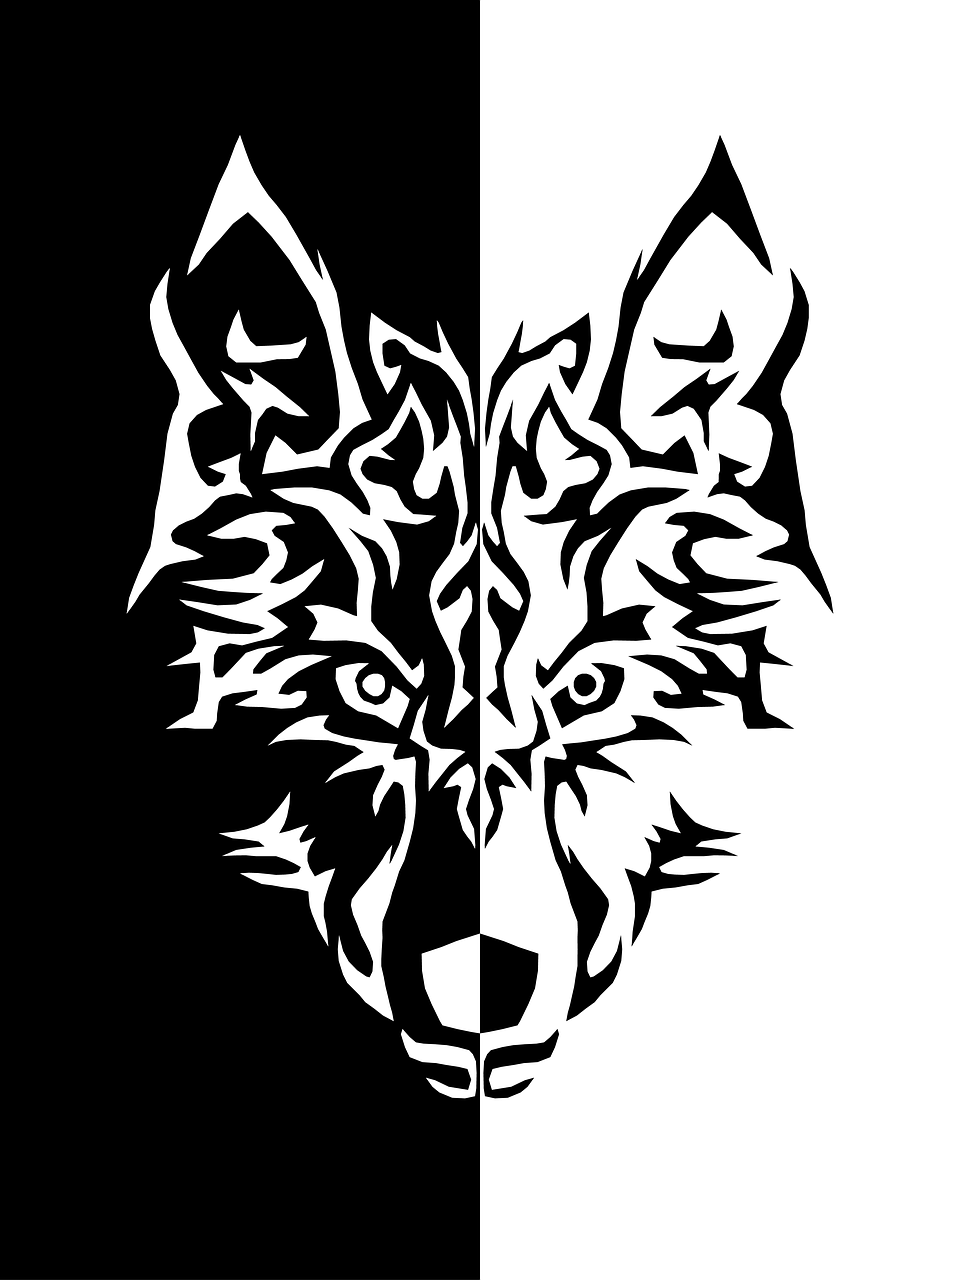 Wolf Black And White Iphone Wallpaper Desktop Wallpapers Drawing Free Image From Needpix Com